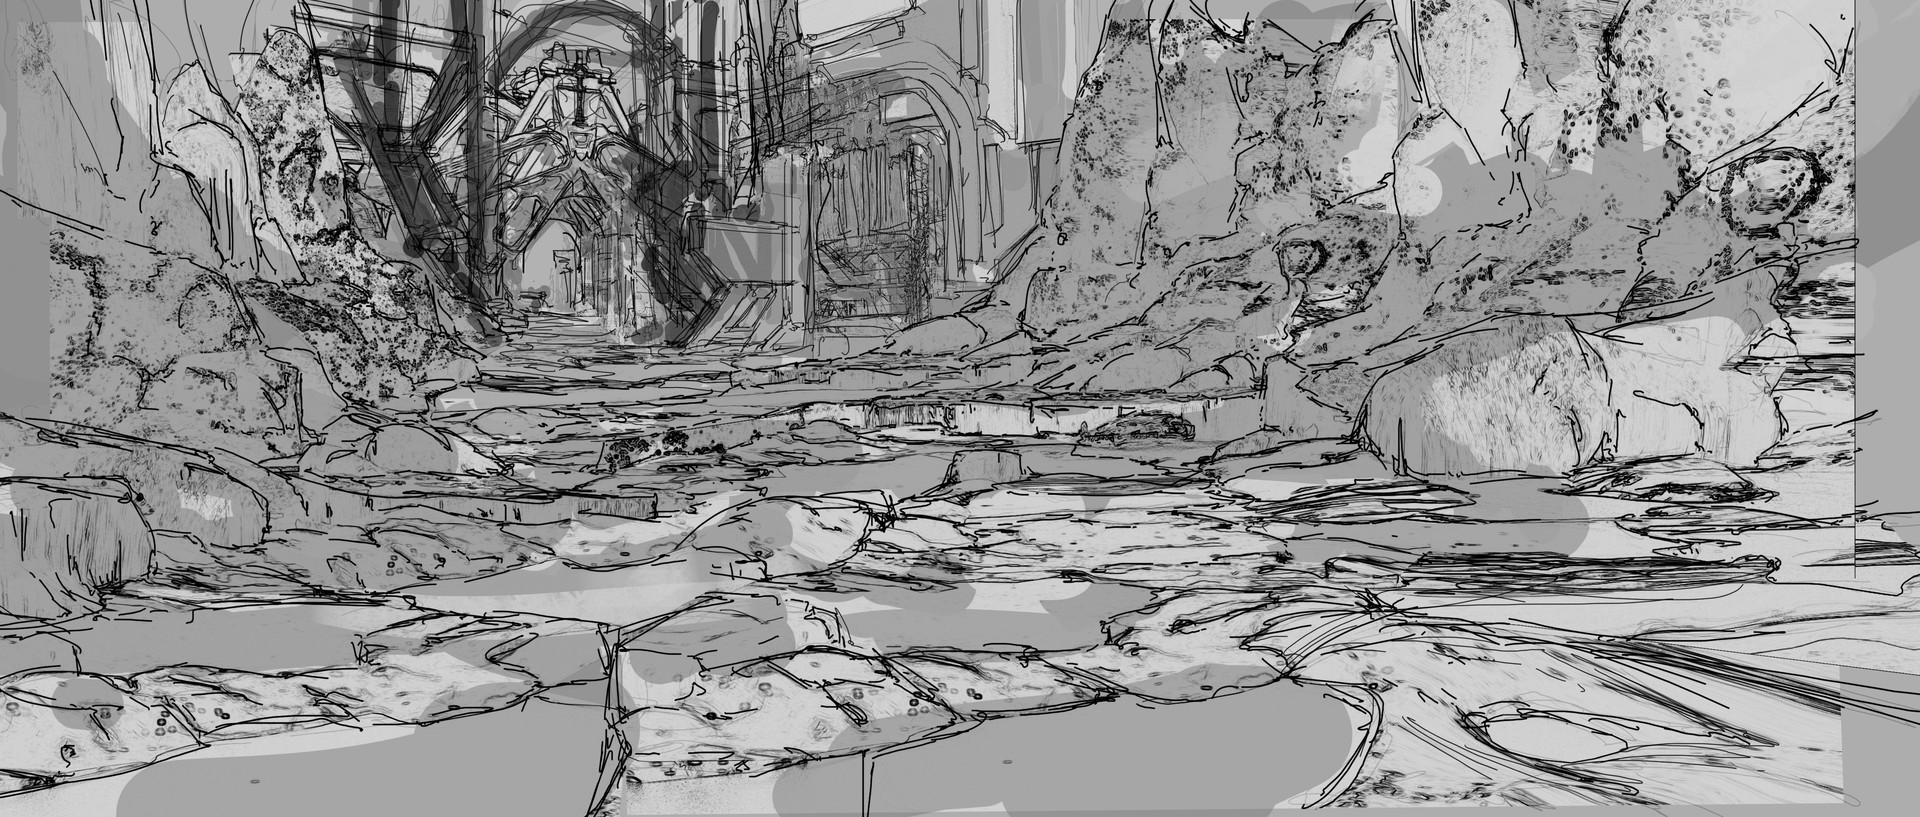 Wojciech bajor catcholics beach entrance line art v2